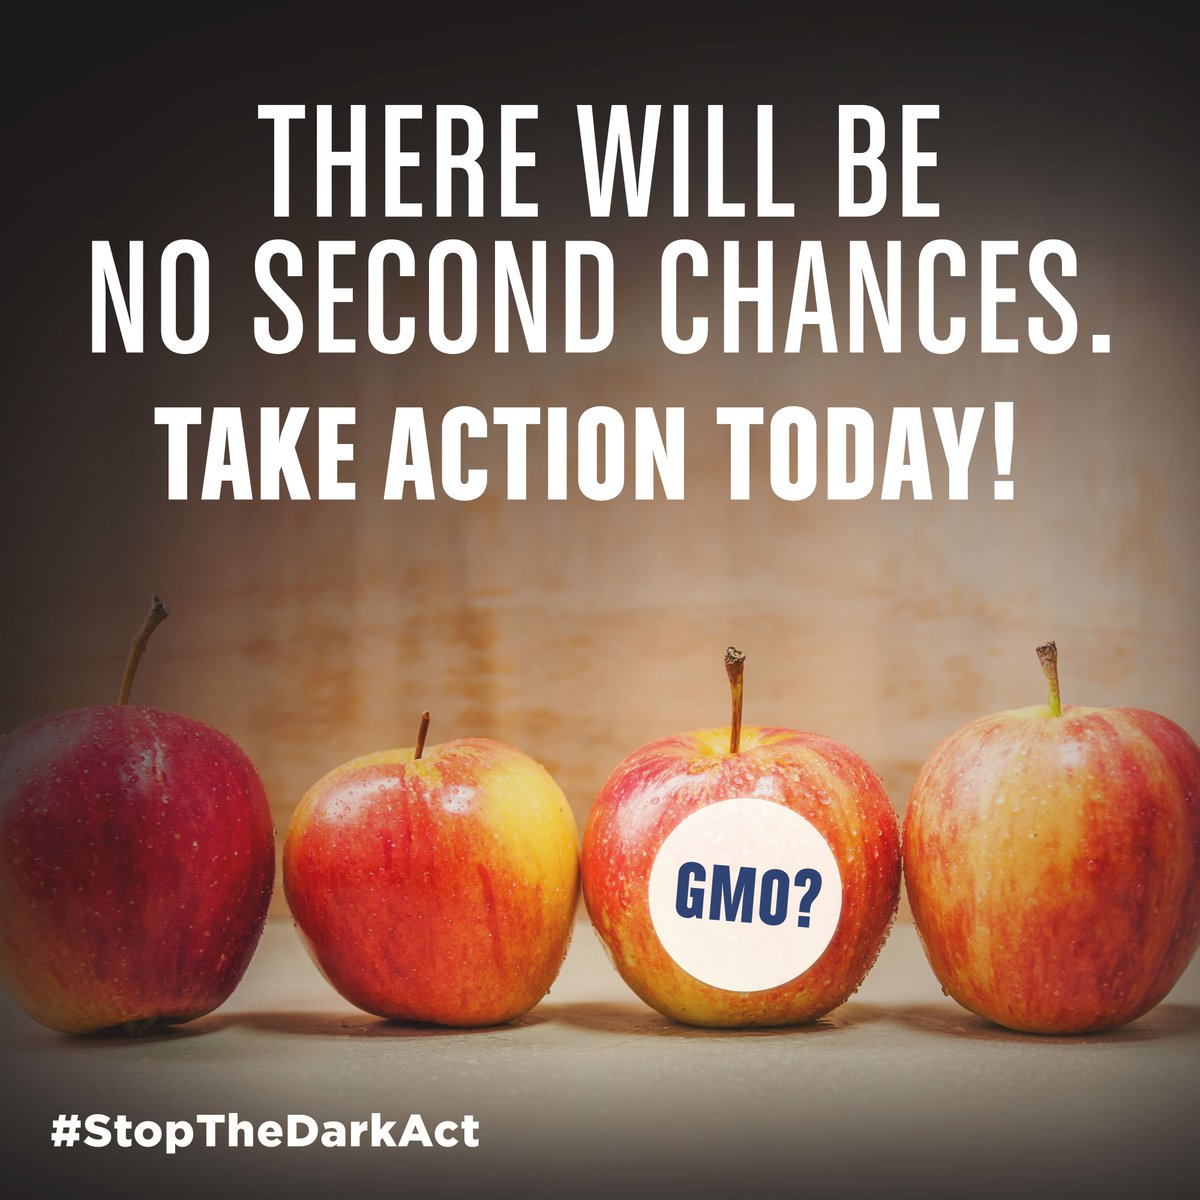 The Senate will vote on the DARK Act TOMORROW! Take action now: https://t.co/PbENSH0bys #StopTheDARKAct https://t.co/vCgKS7d5ol